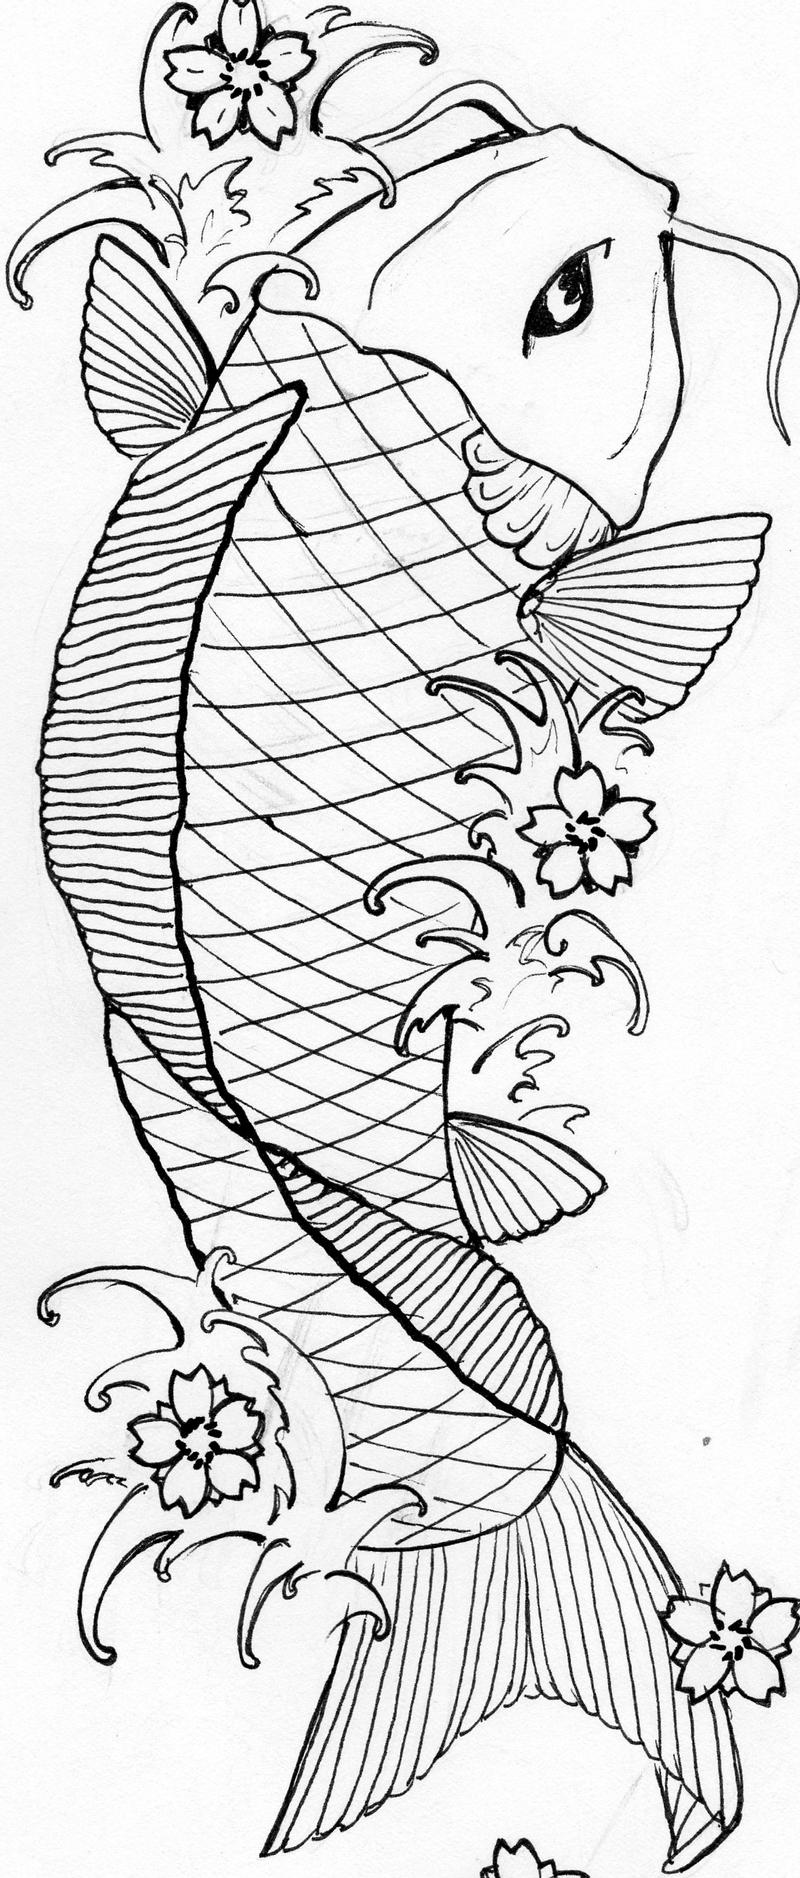 japanese koi fish coloring pages coloring pages terrific koi fish coloring pages koi fish japanese coloring koi pages fish